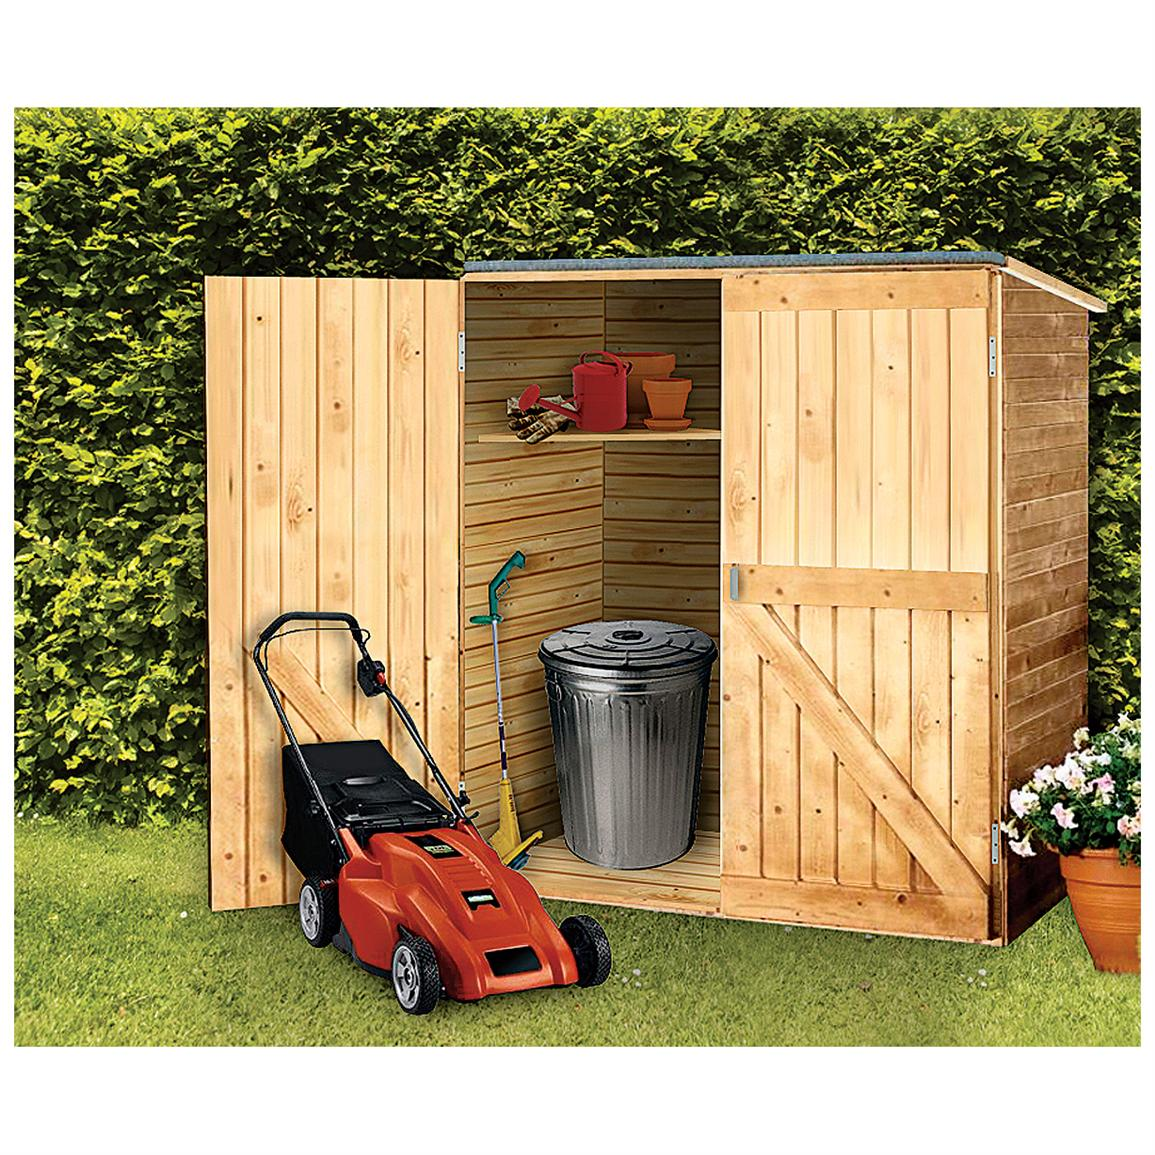 Wooden storage shed shed blueprints for Barn storage shed